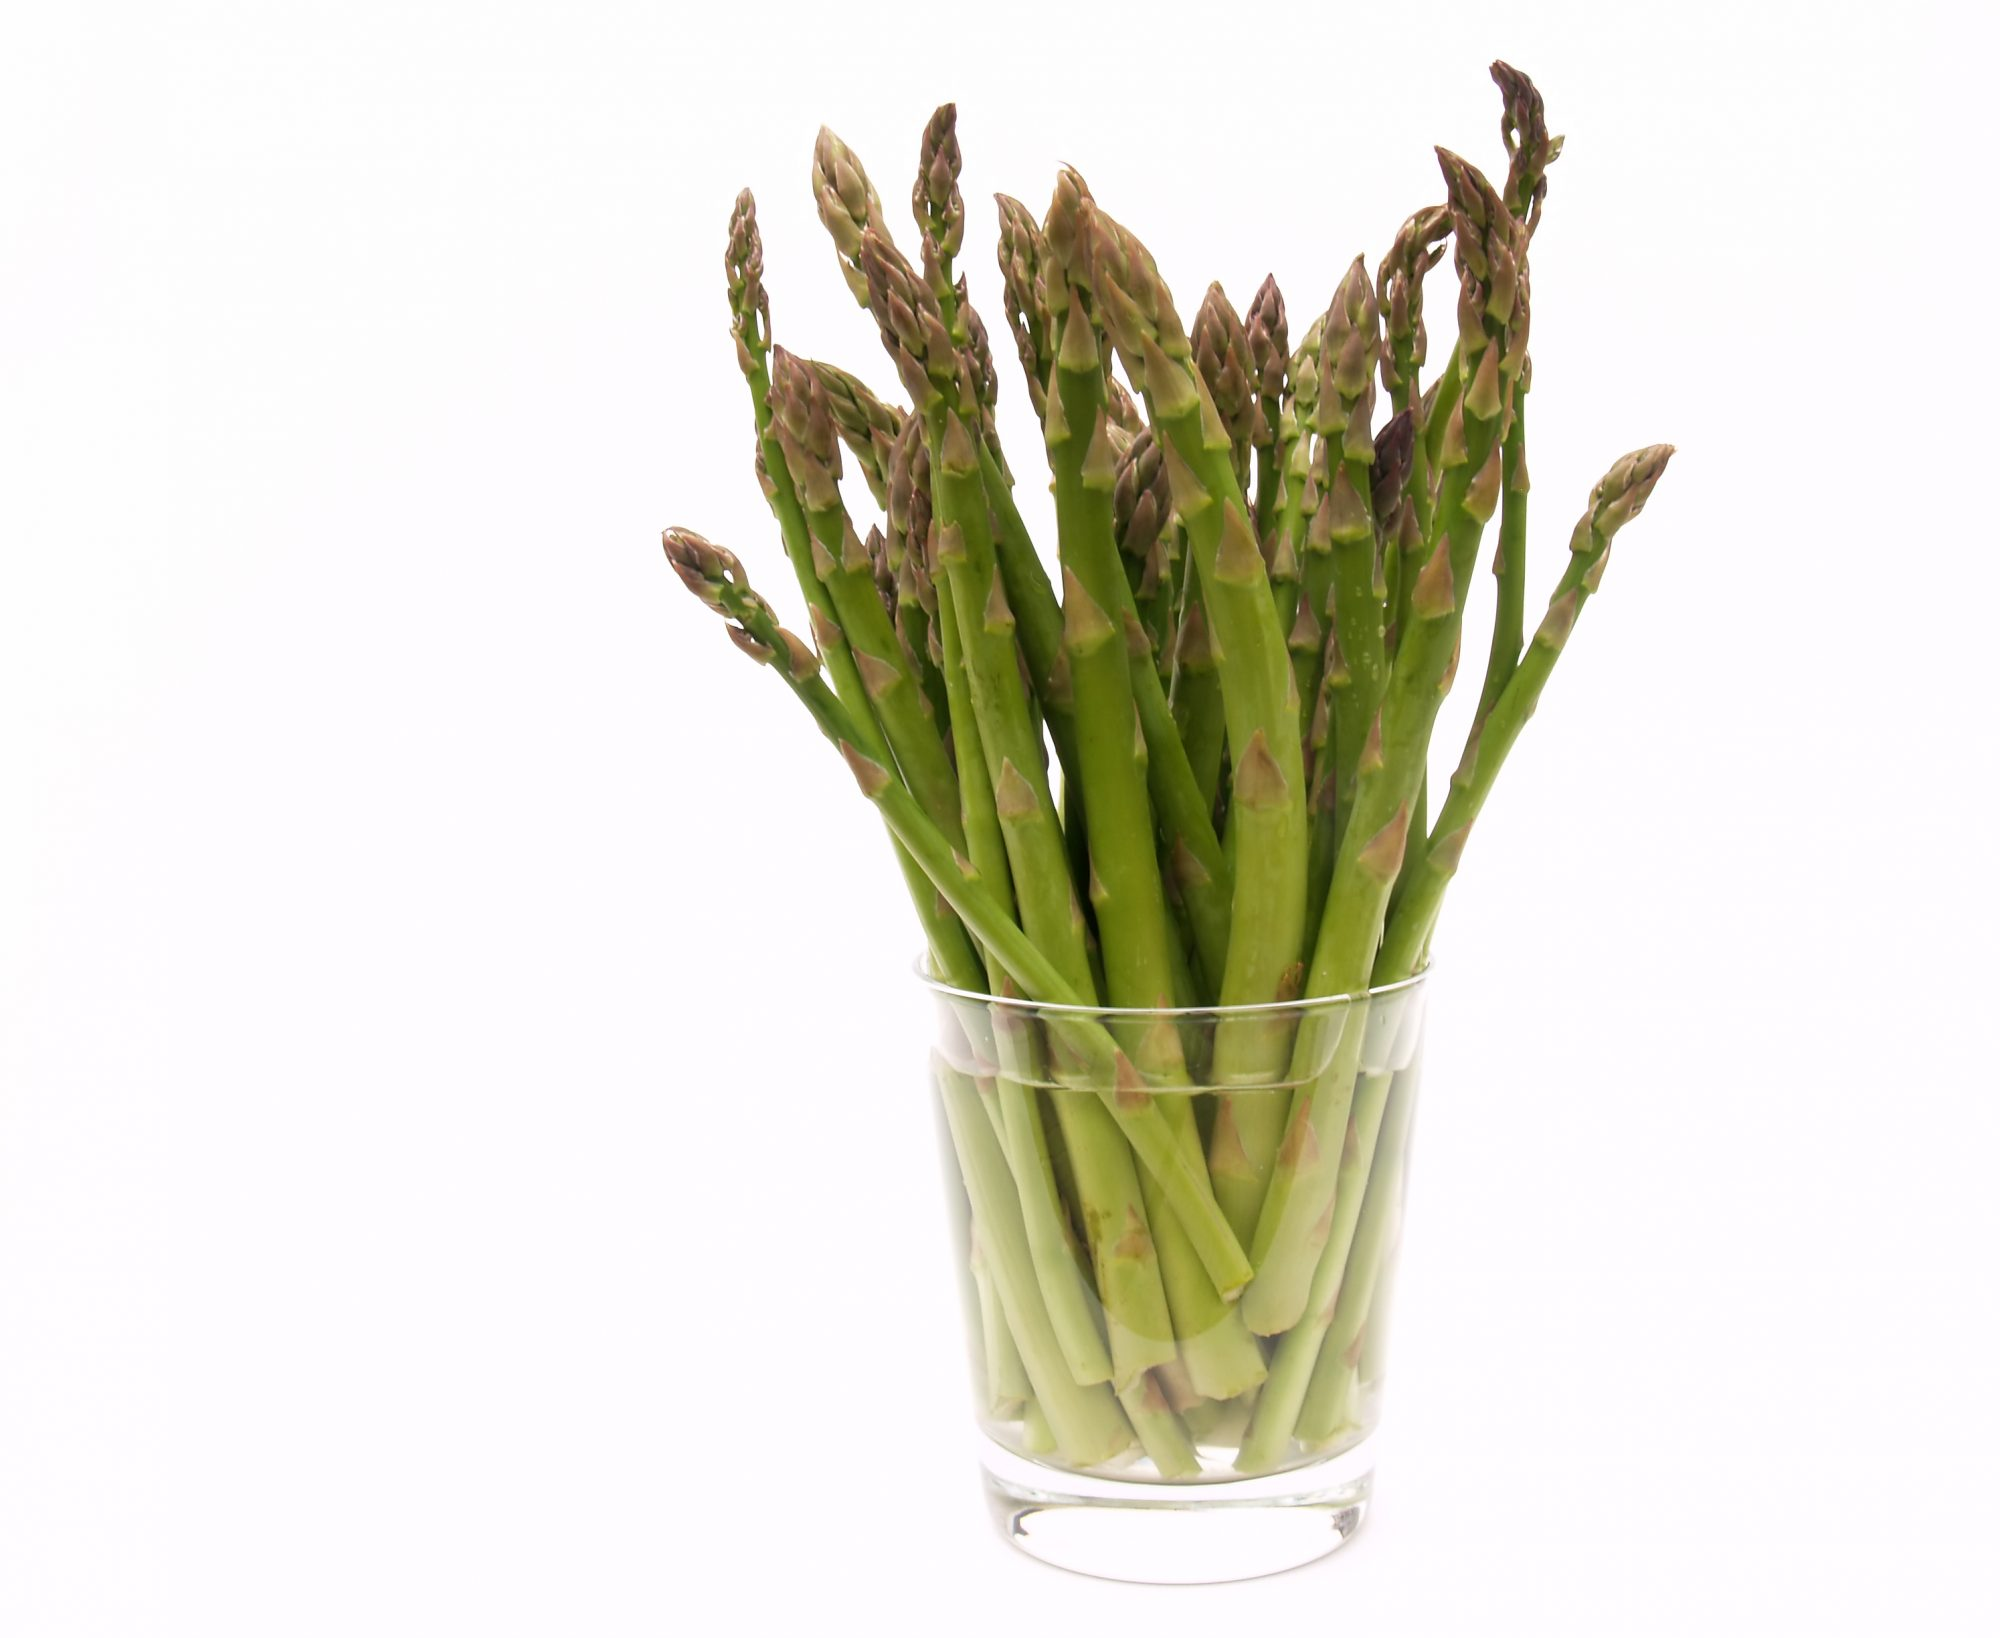 Asparagus In Water Getty 4/22/20